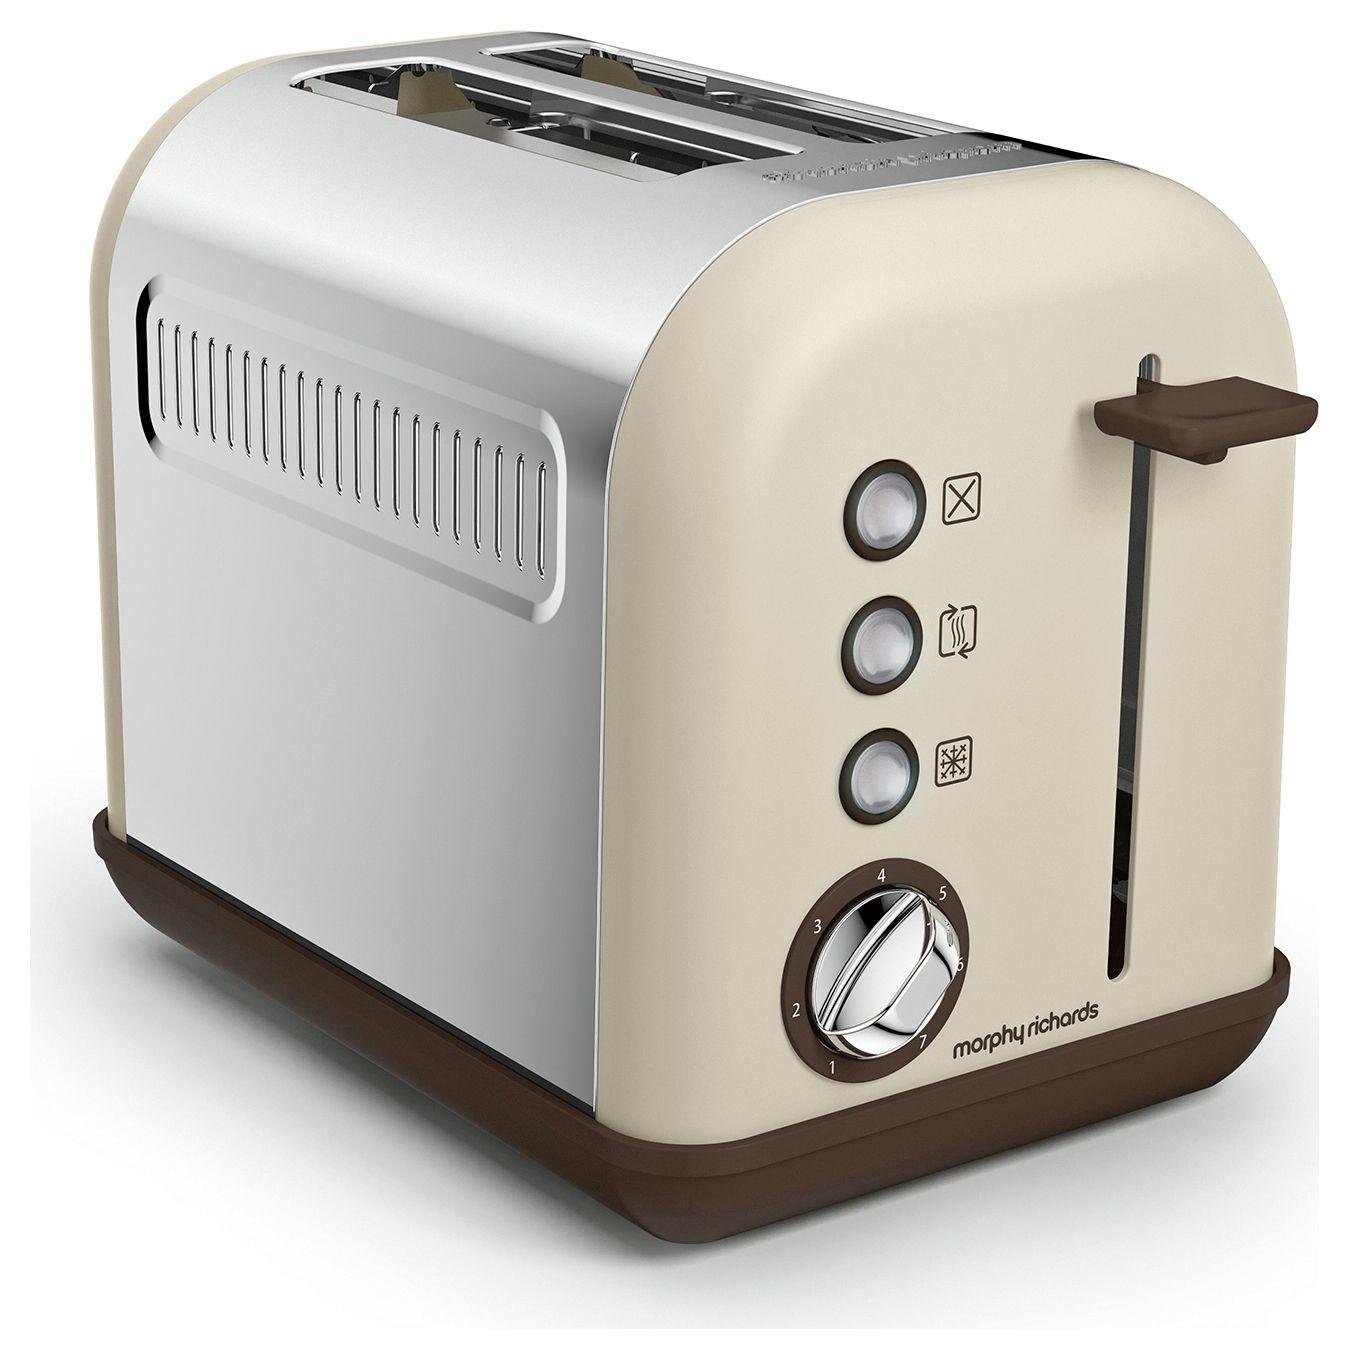 Morphy Richards - Toaster - Accents - 2 Slice - Sand.